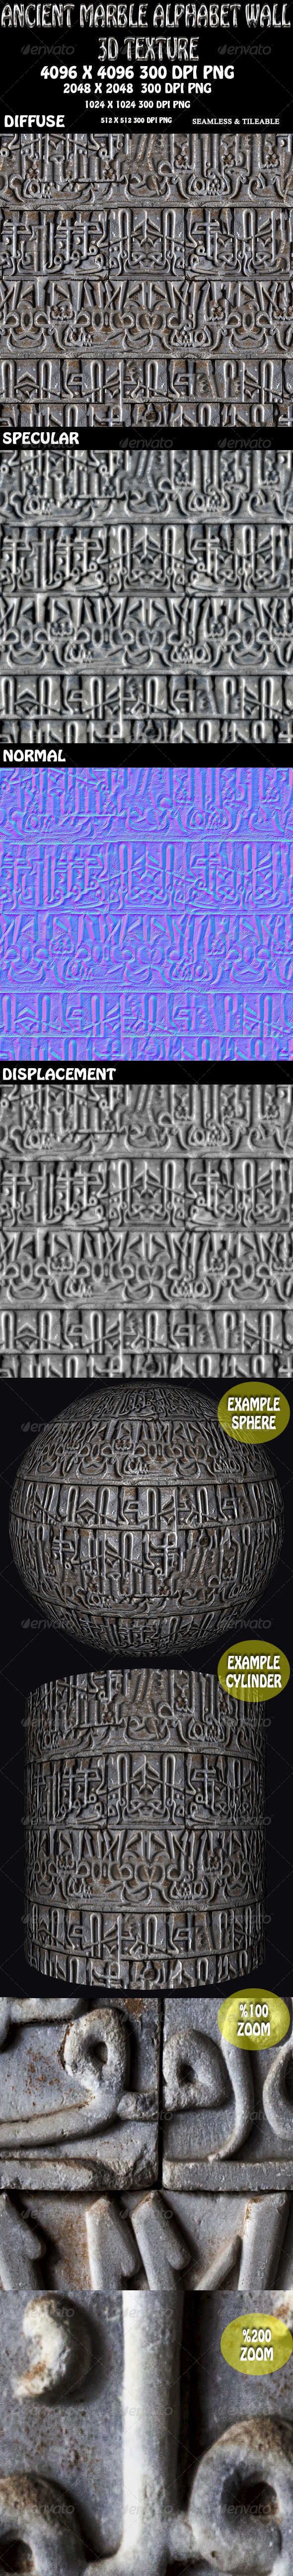 Ancient Alphabet Marble Wall 3D Texture